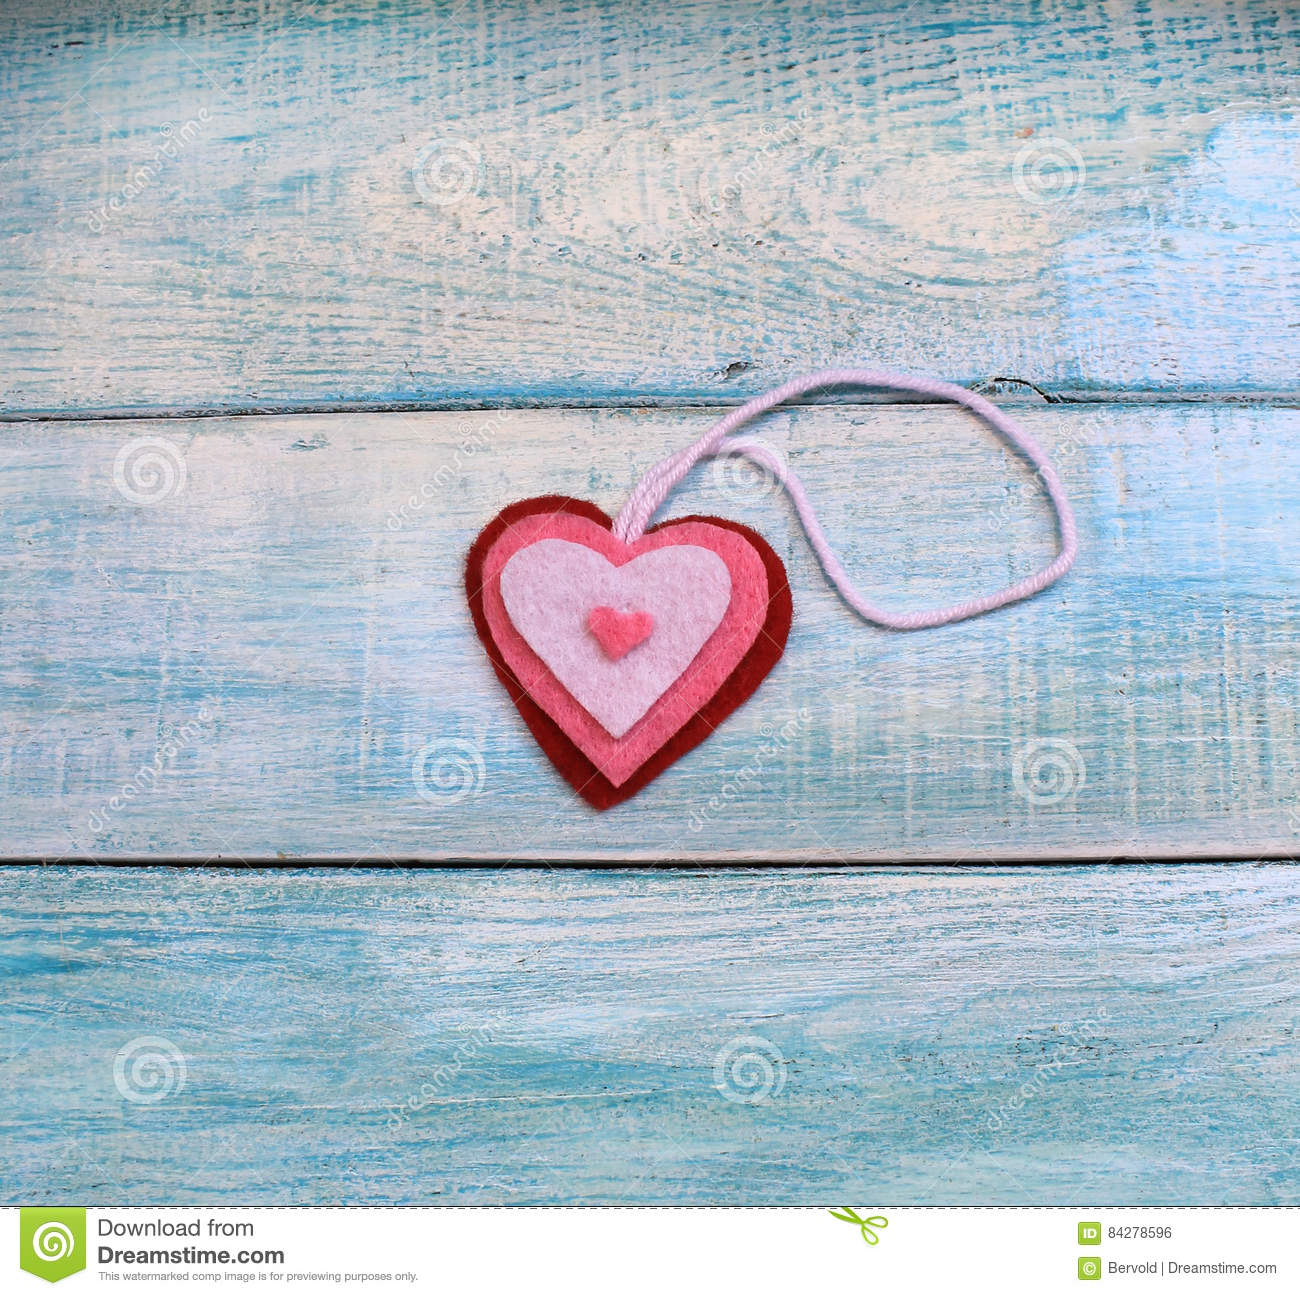 Souvenir Of Last Beautiful Day For >> Heart Felt Souvenir For Valentine S Day Stock Photo Image Of Nice